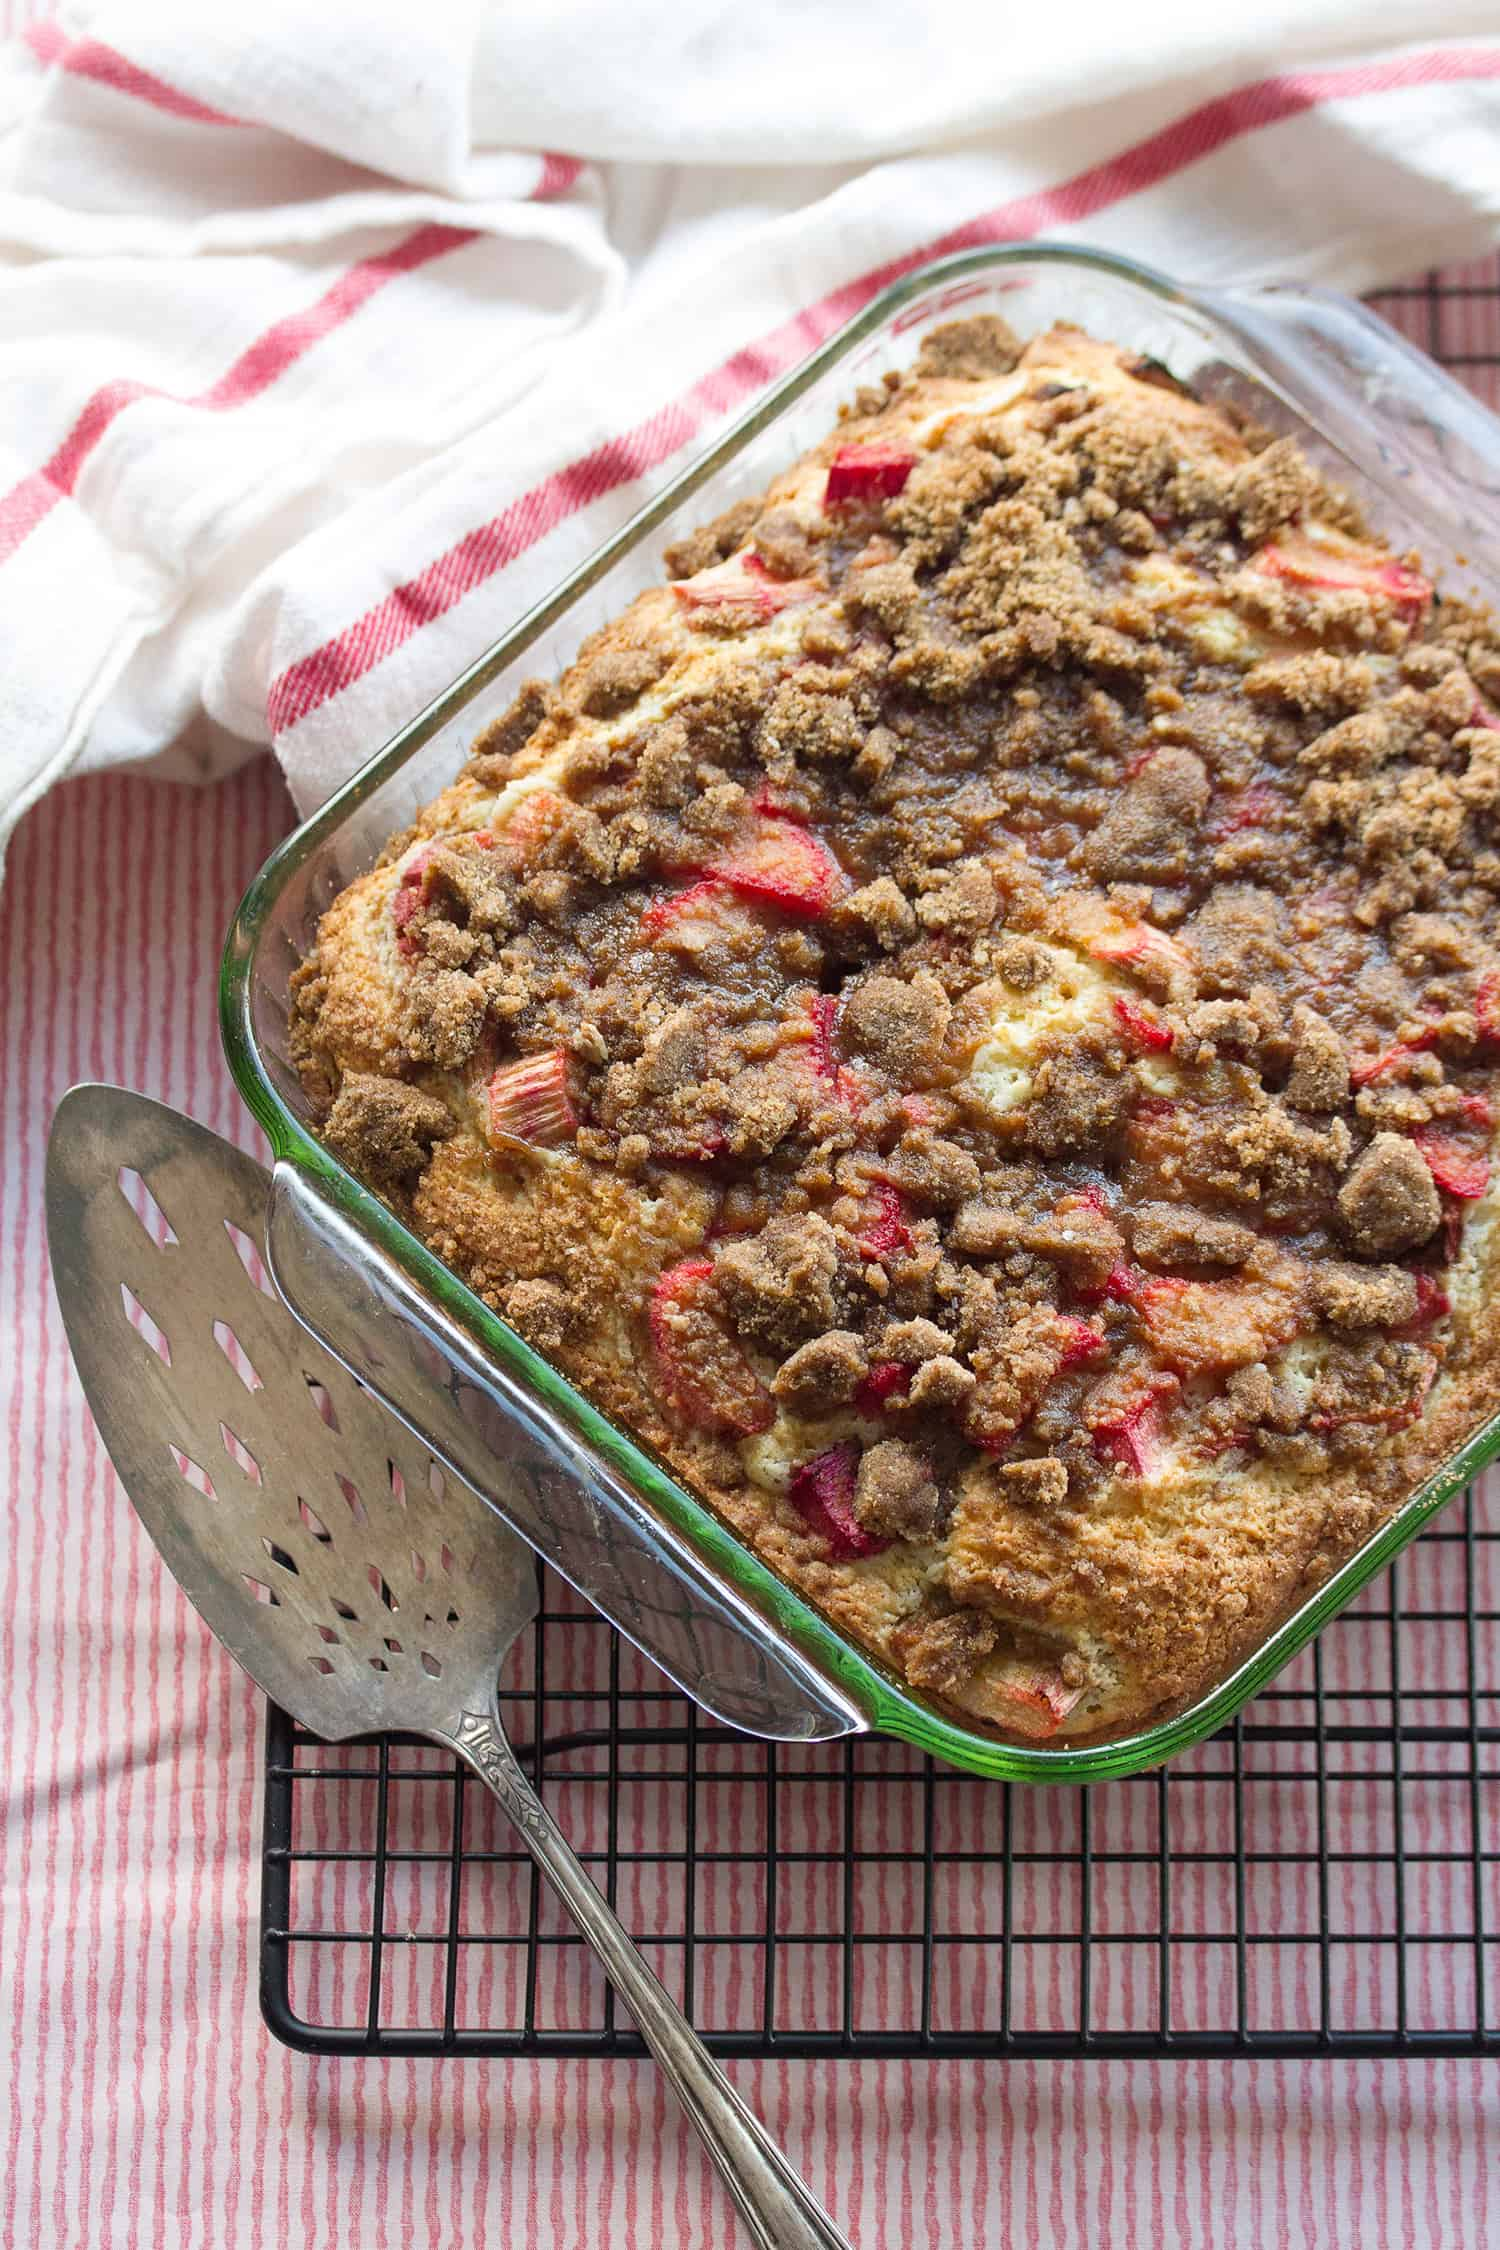 Lemon Rhubarb Coffee Cake